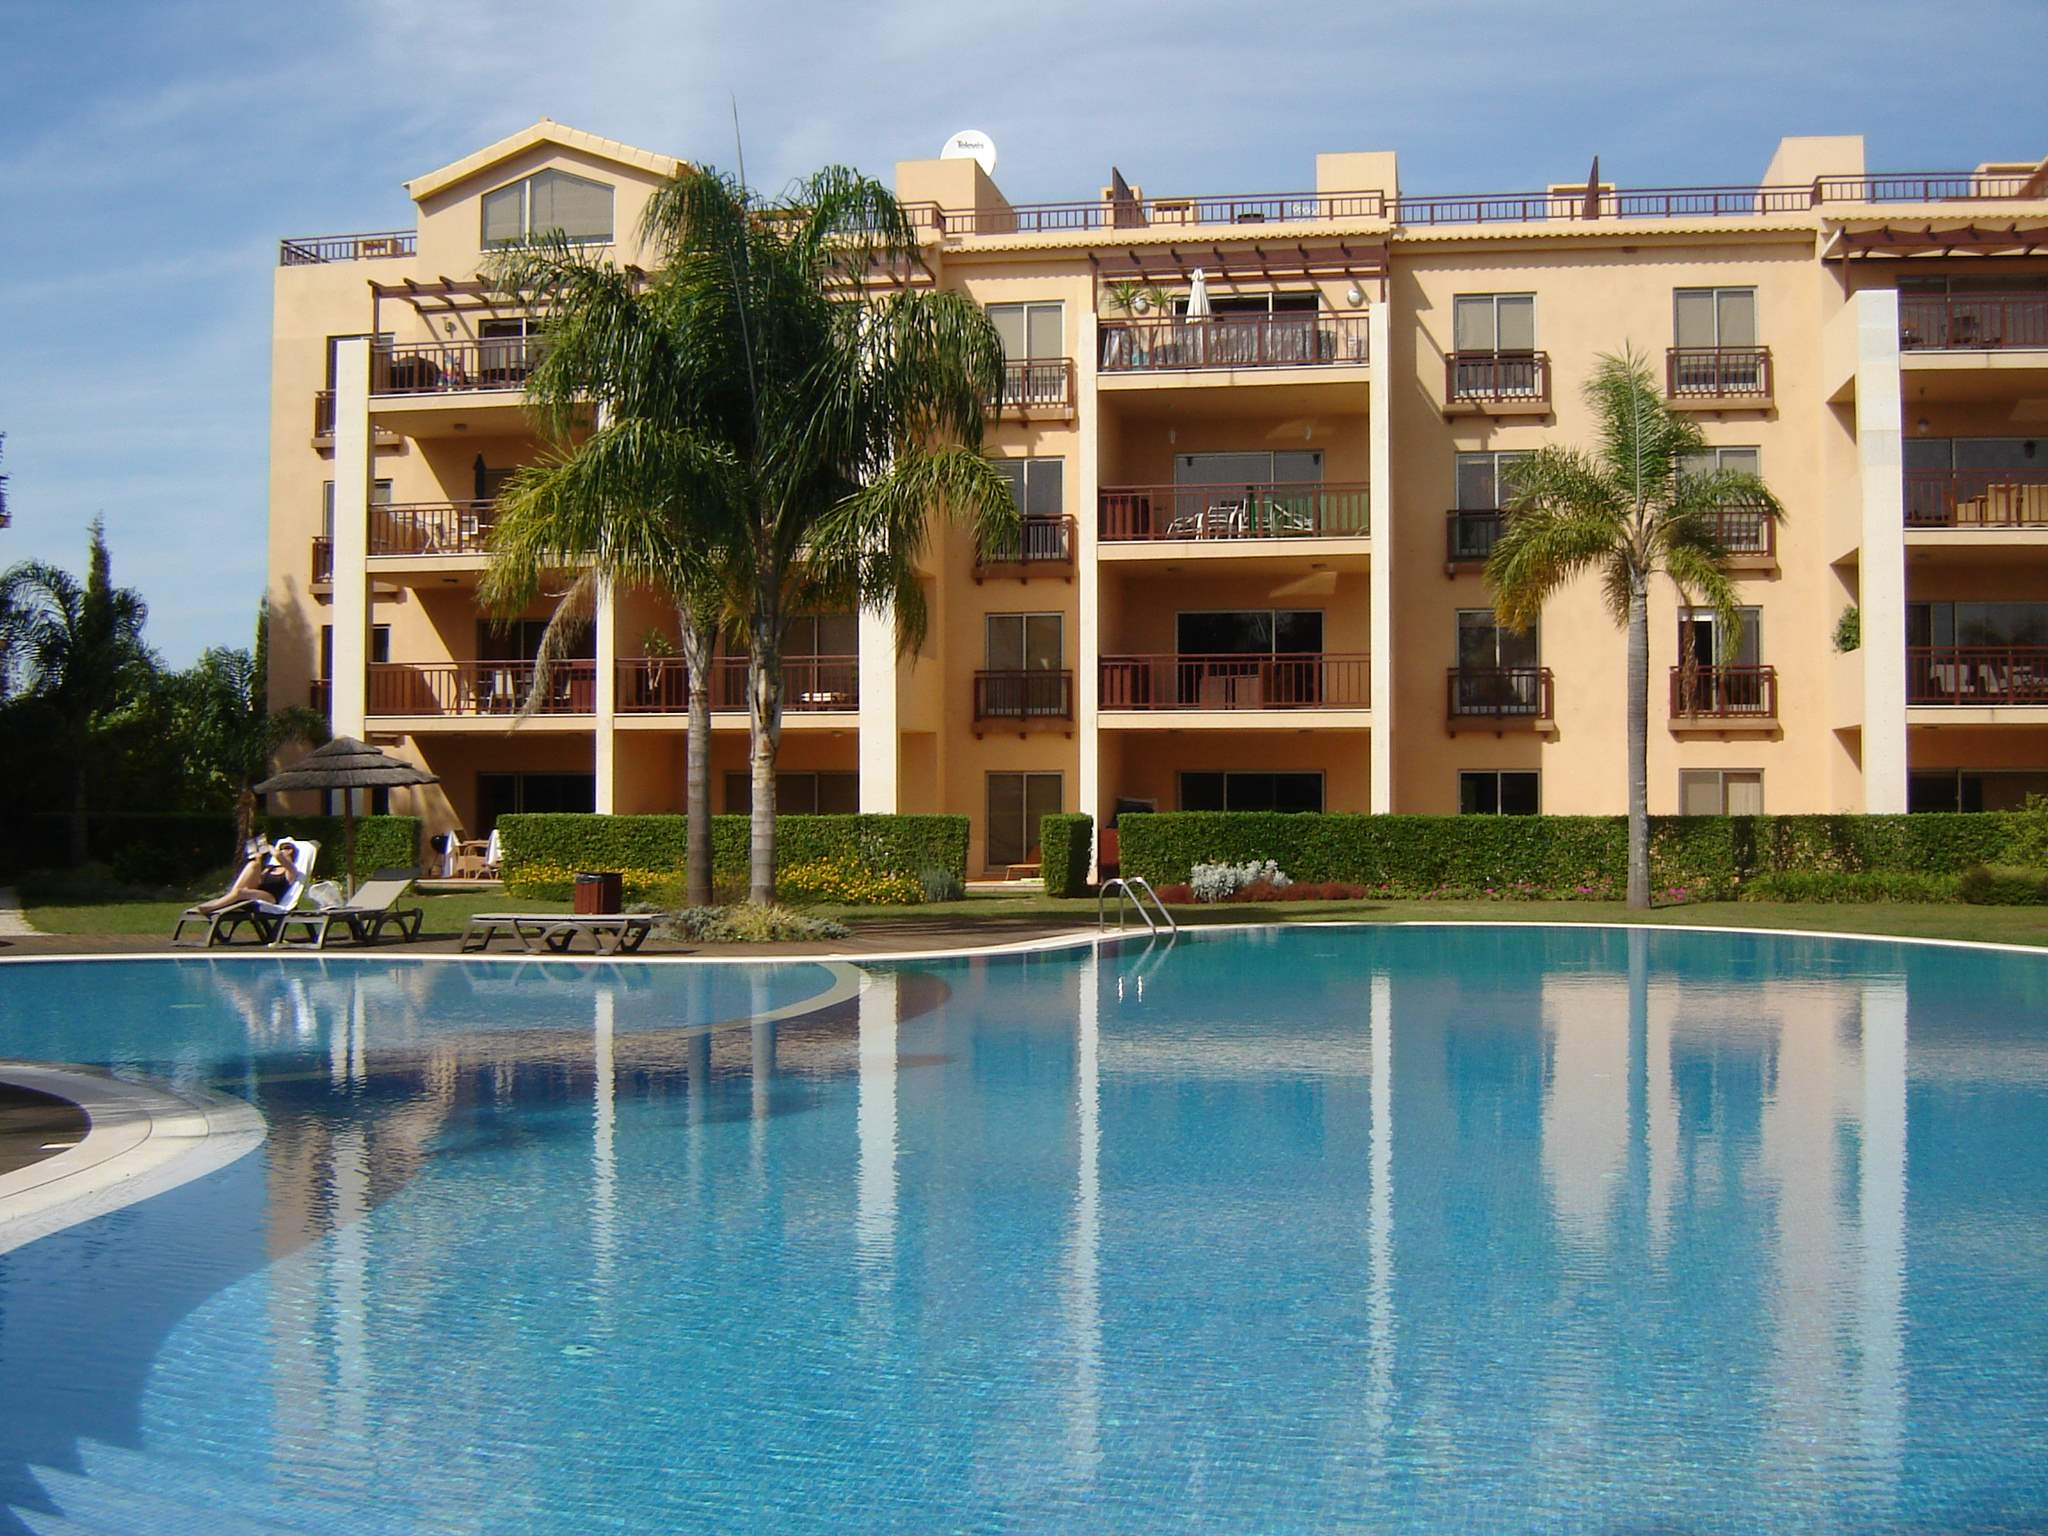 Apartment Majoka, 2 bedroom apartment in Vilamoura Area, Algarve Photo #1